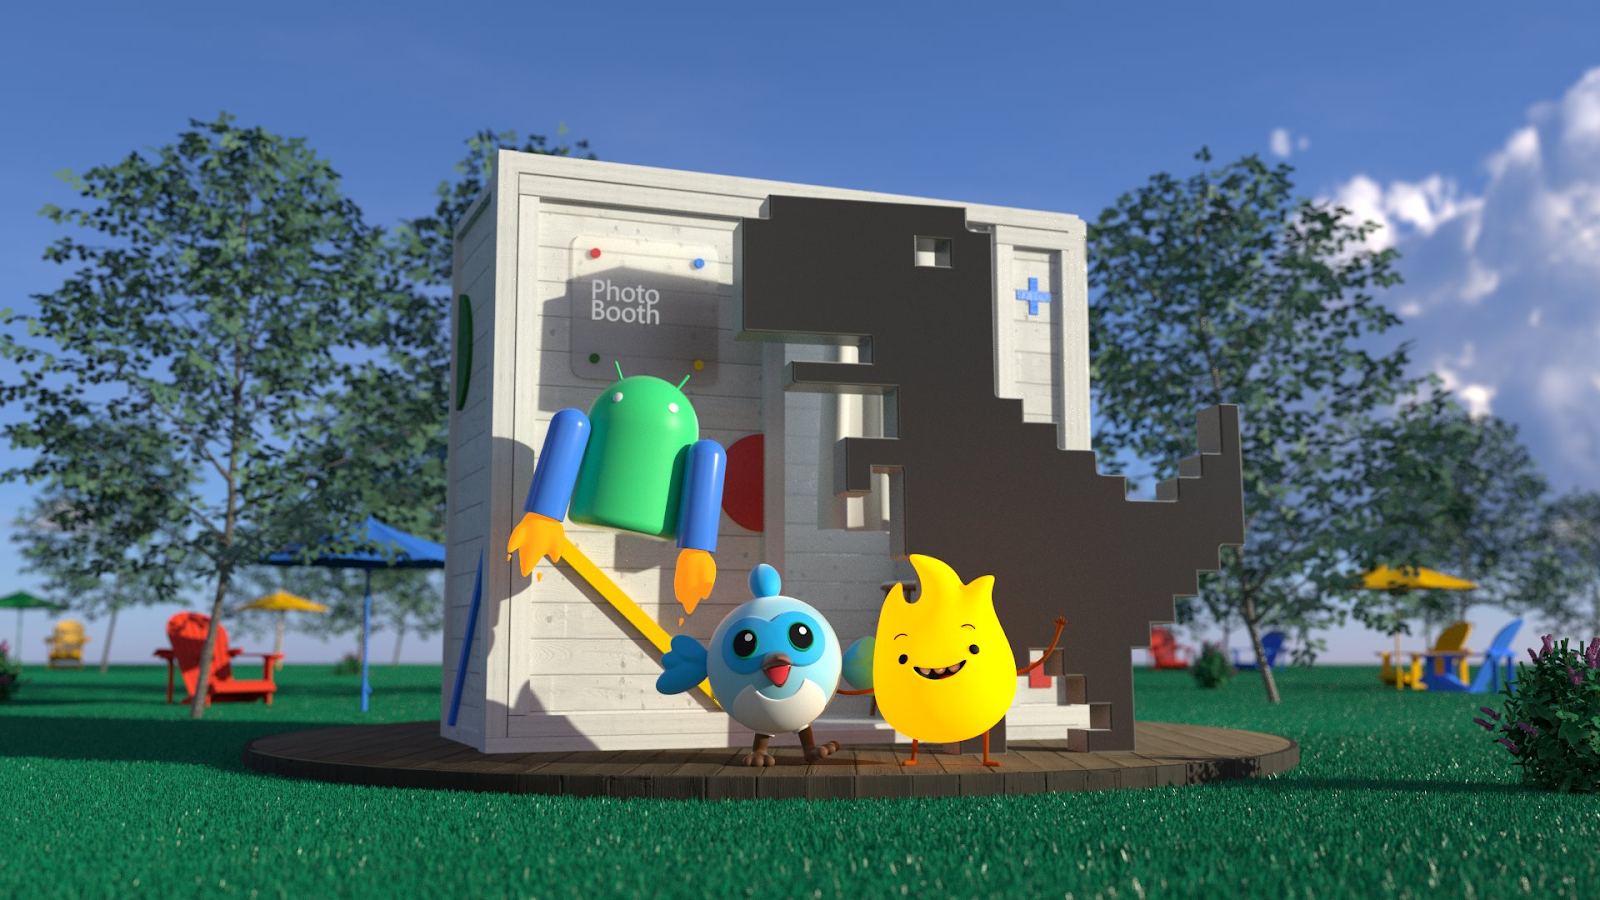 Android, Dino, Dash, and Sparky all gathered around the photo booth